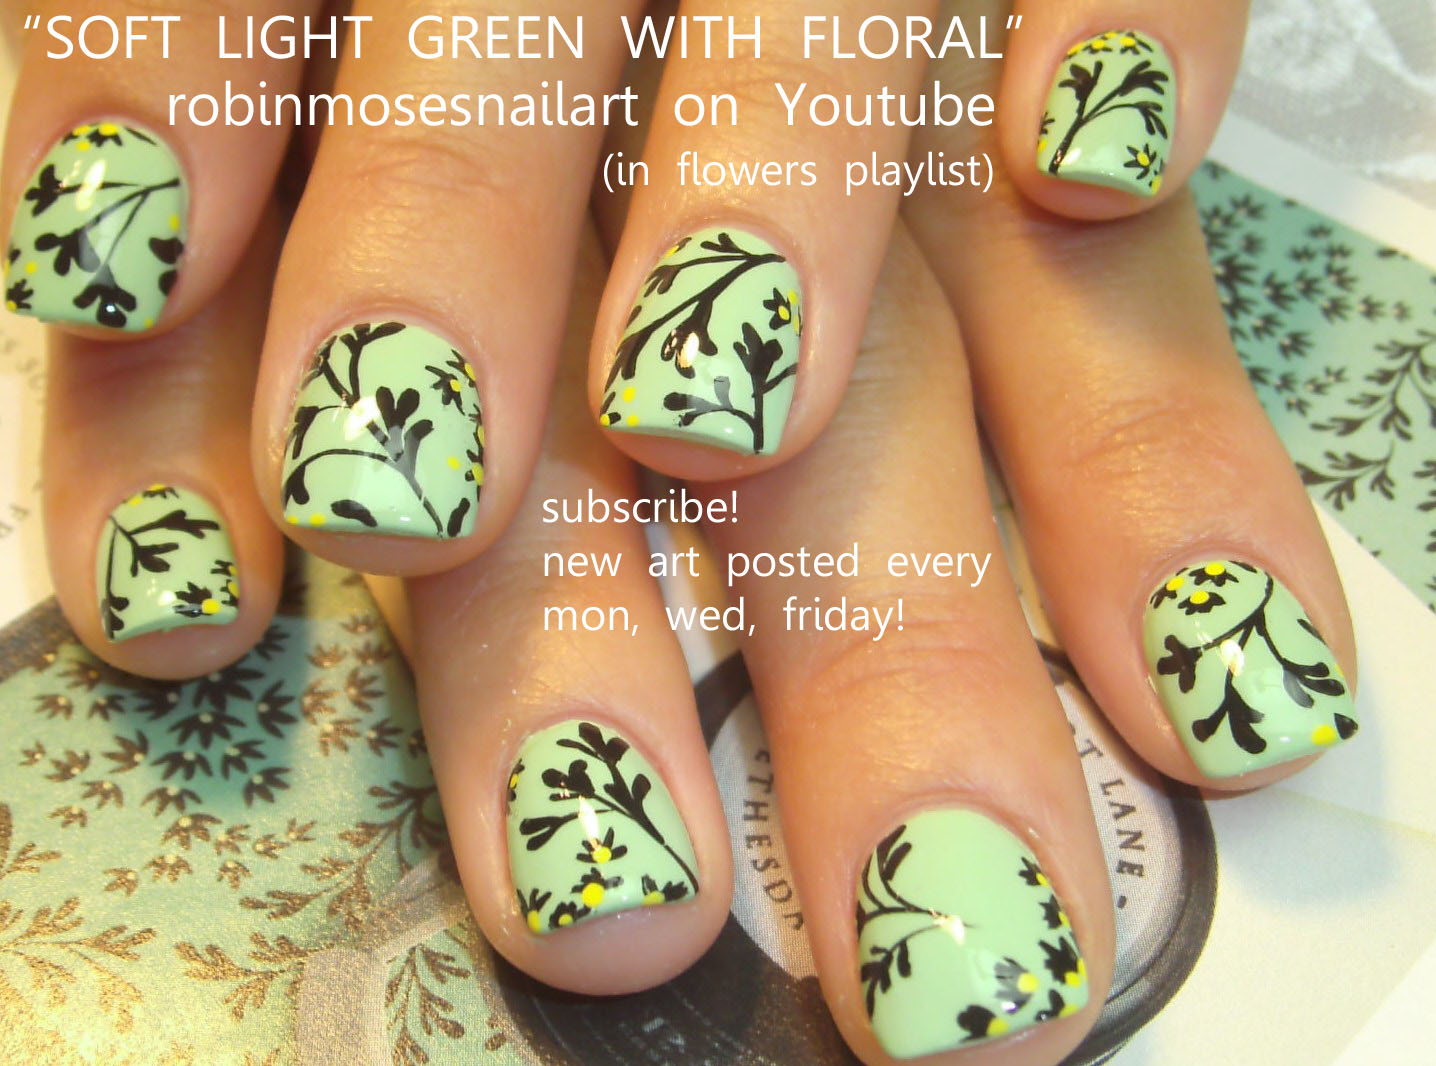 Robin moses nail art am i weird yes so what rainbow nails easy black flower nail art on short mint gr prinsesfo Gallery